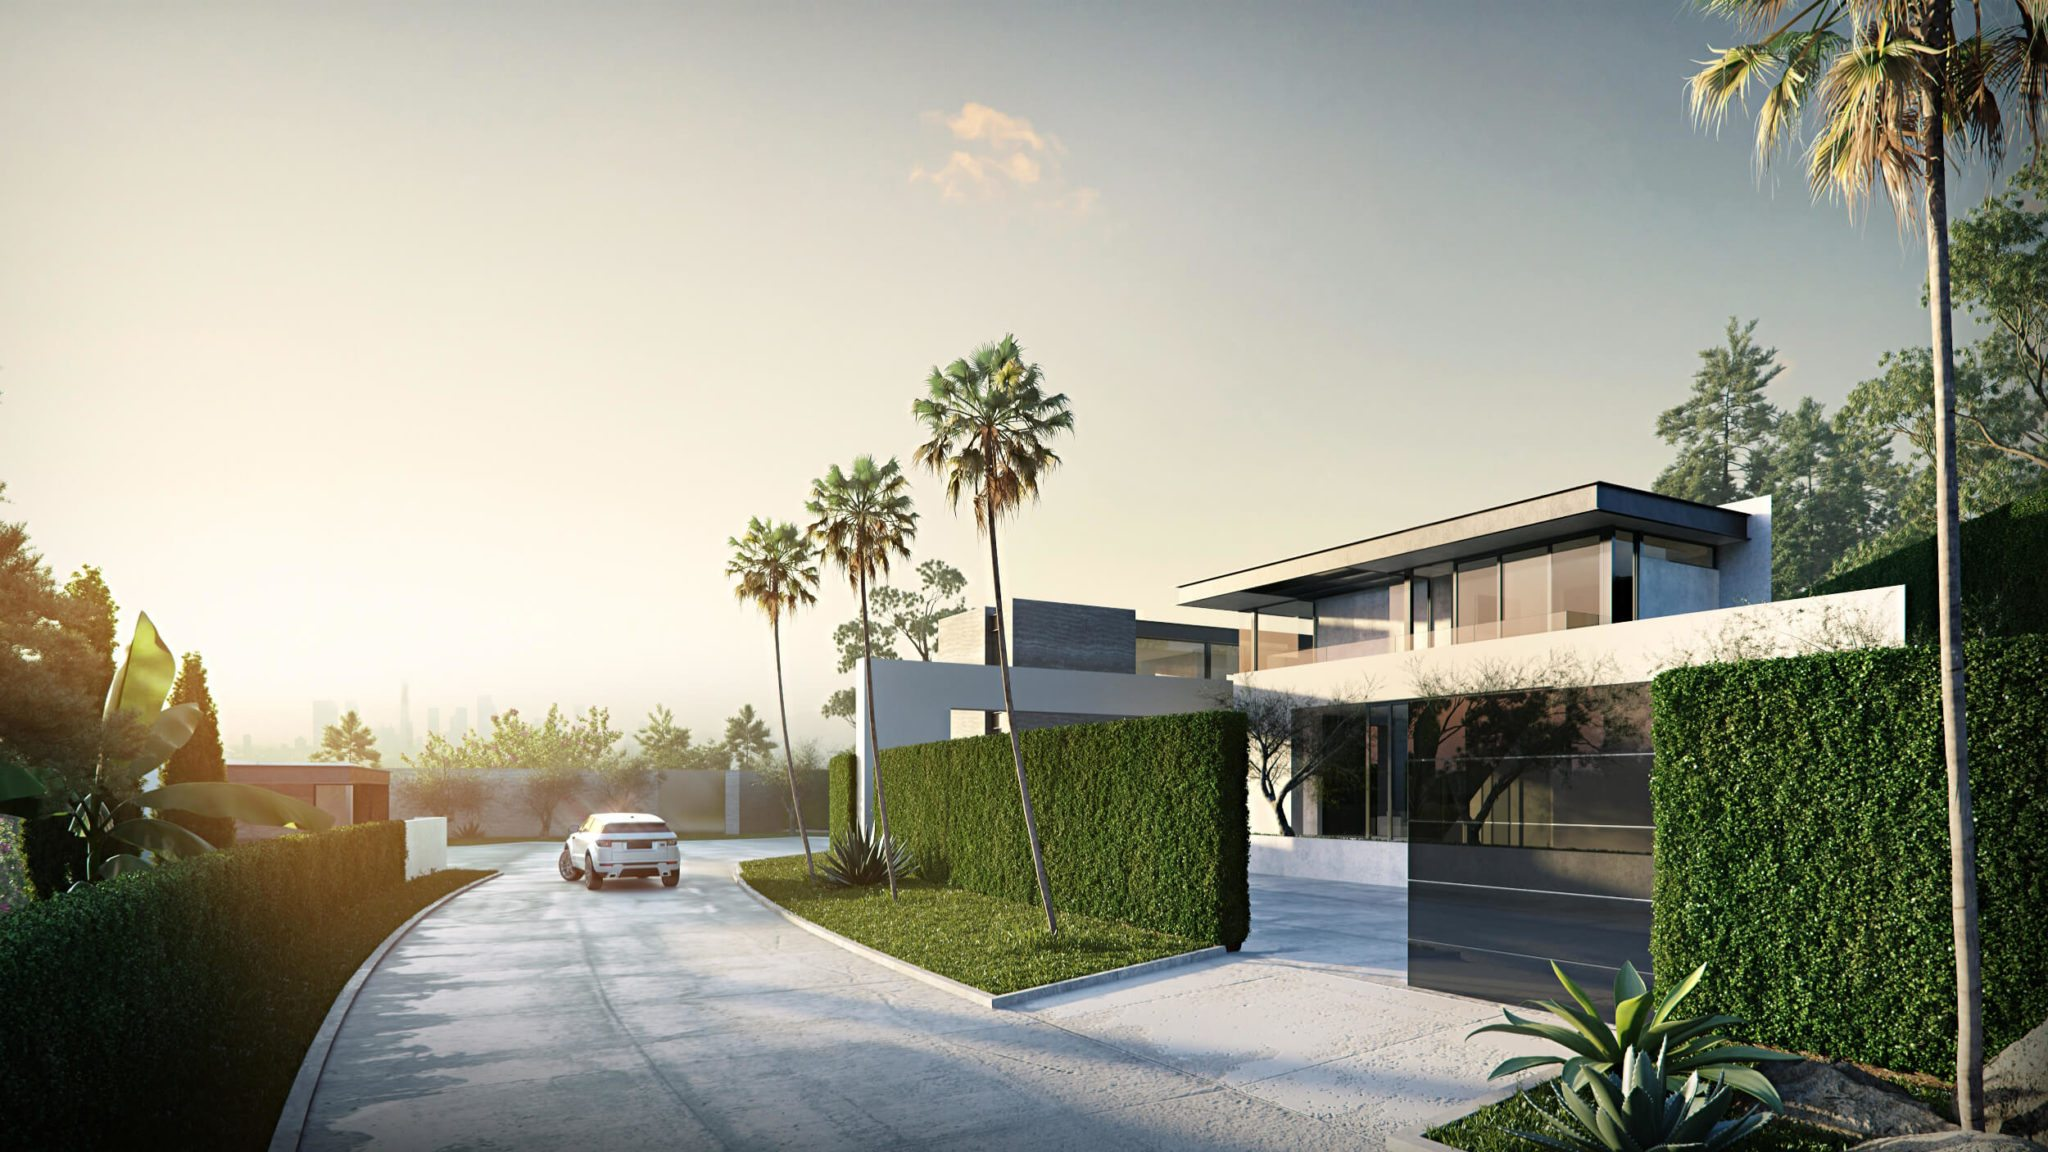 3D Render Of a Residential Property